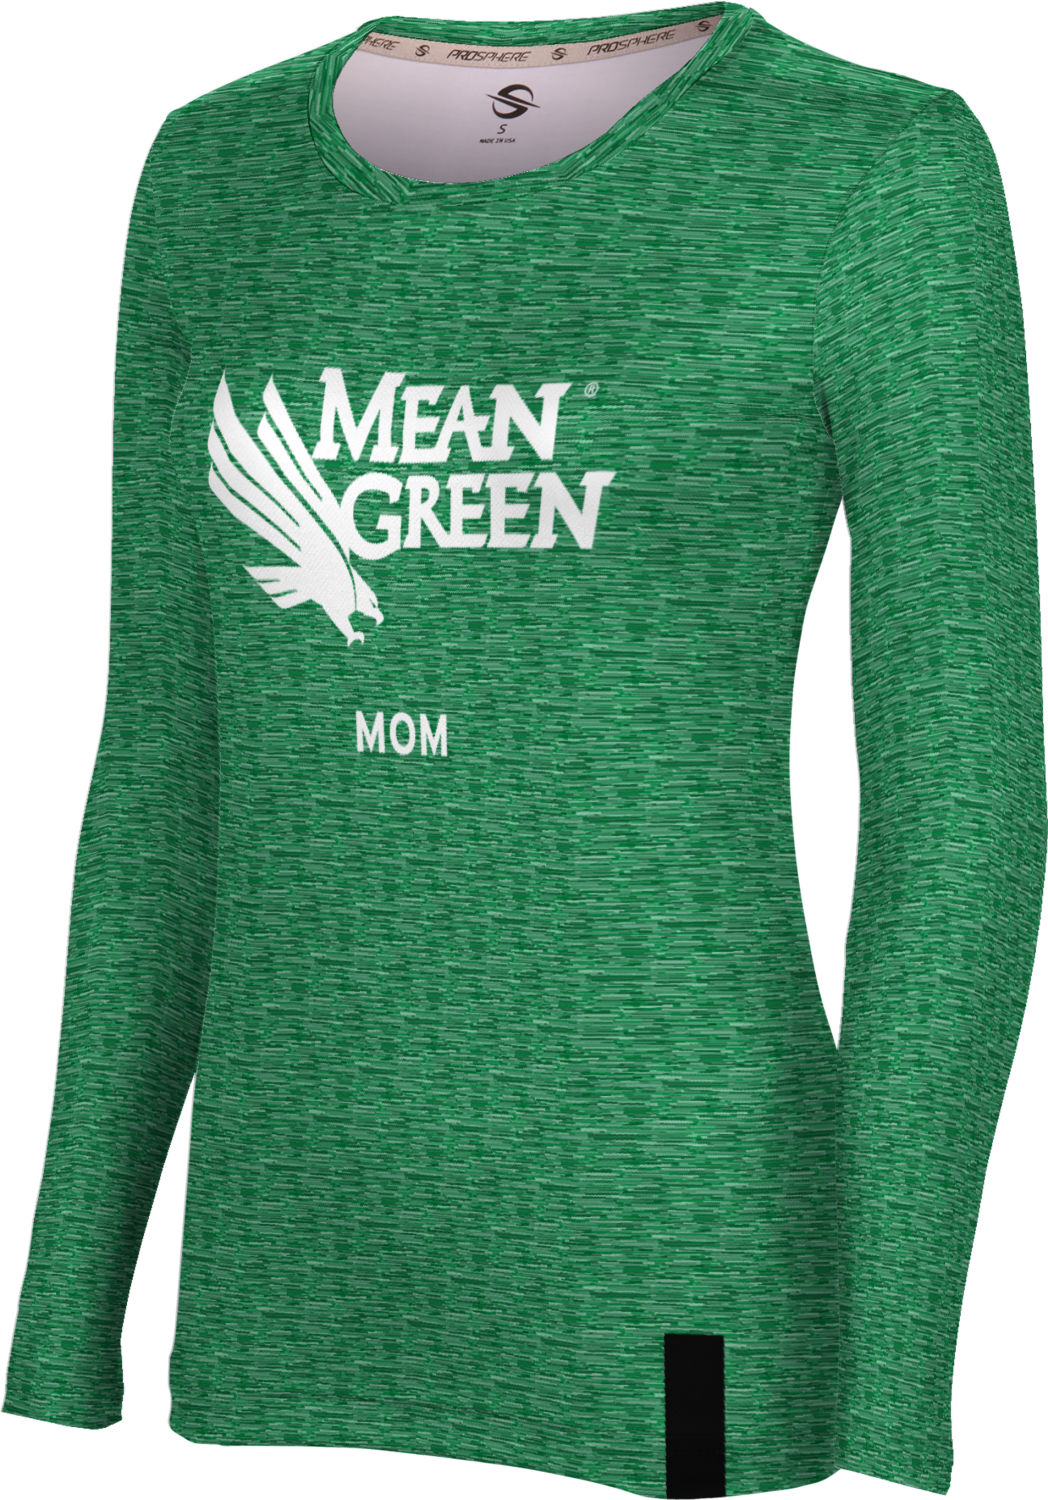 ProSphere Mom Women's Long Sleeve Tee